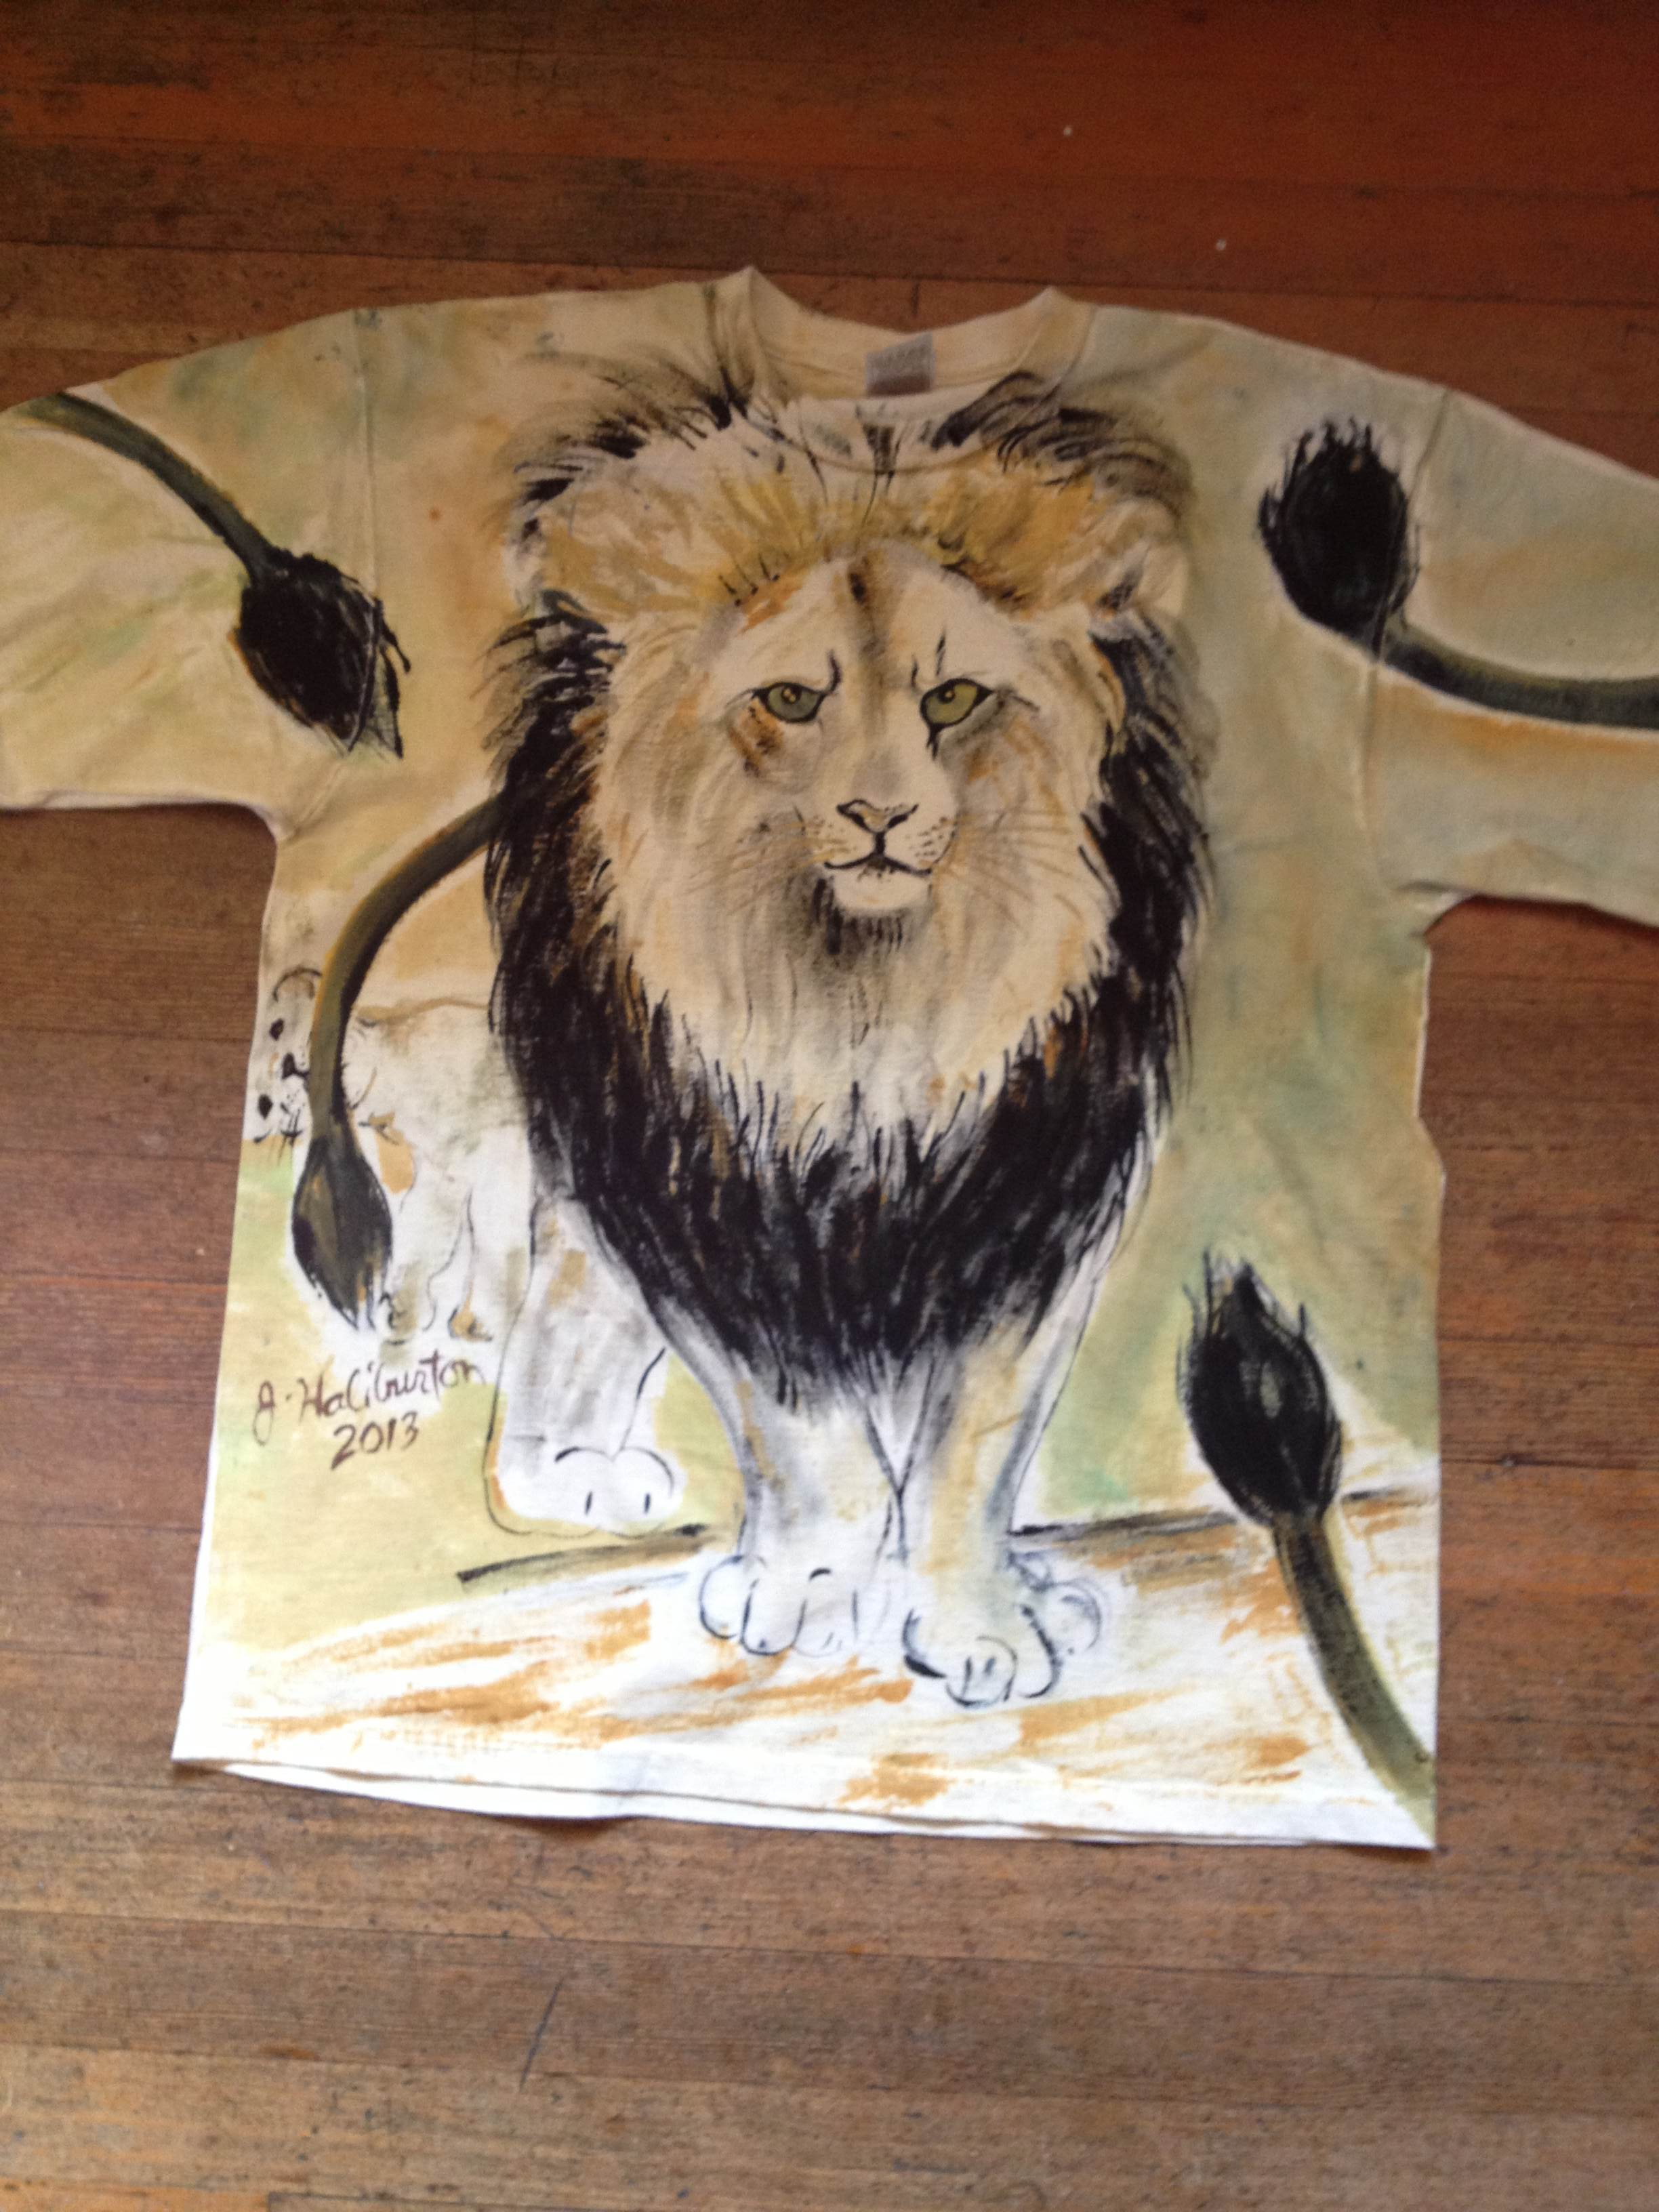 Shirt design vancouver - Some New Handpainted Shirts At Angel Vancouver This Weekend